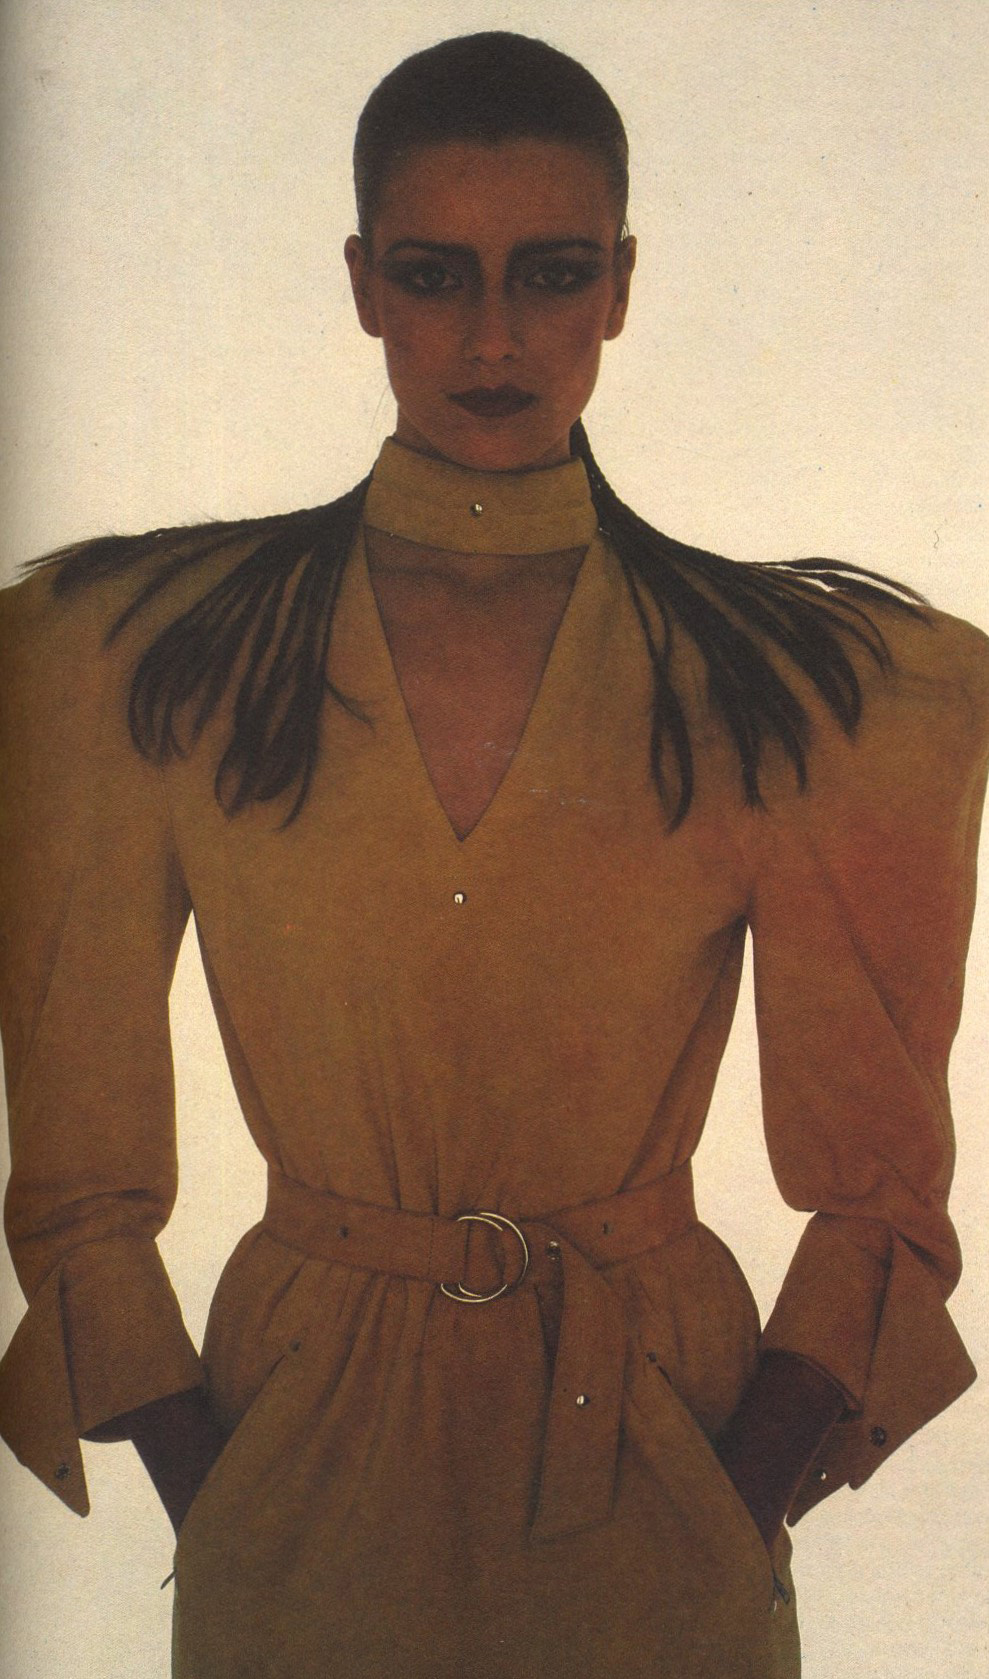 CLAUDE MONTANA | PHOTOGRAPHY OLIVIERO TOSCANI |  10 YEARS OF FASHION 1980-1990 | SUPPLEMENT | DONNA | APRIL 1990